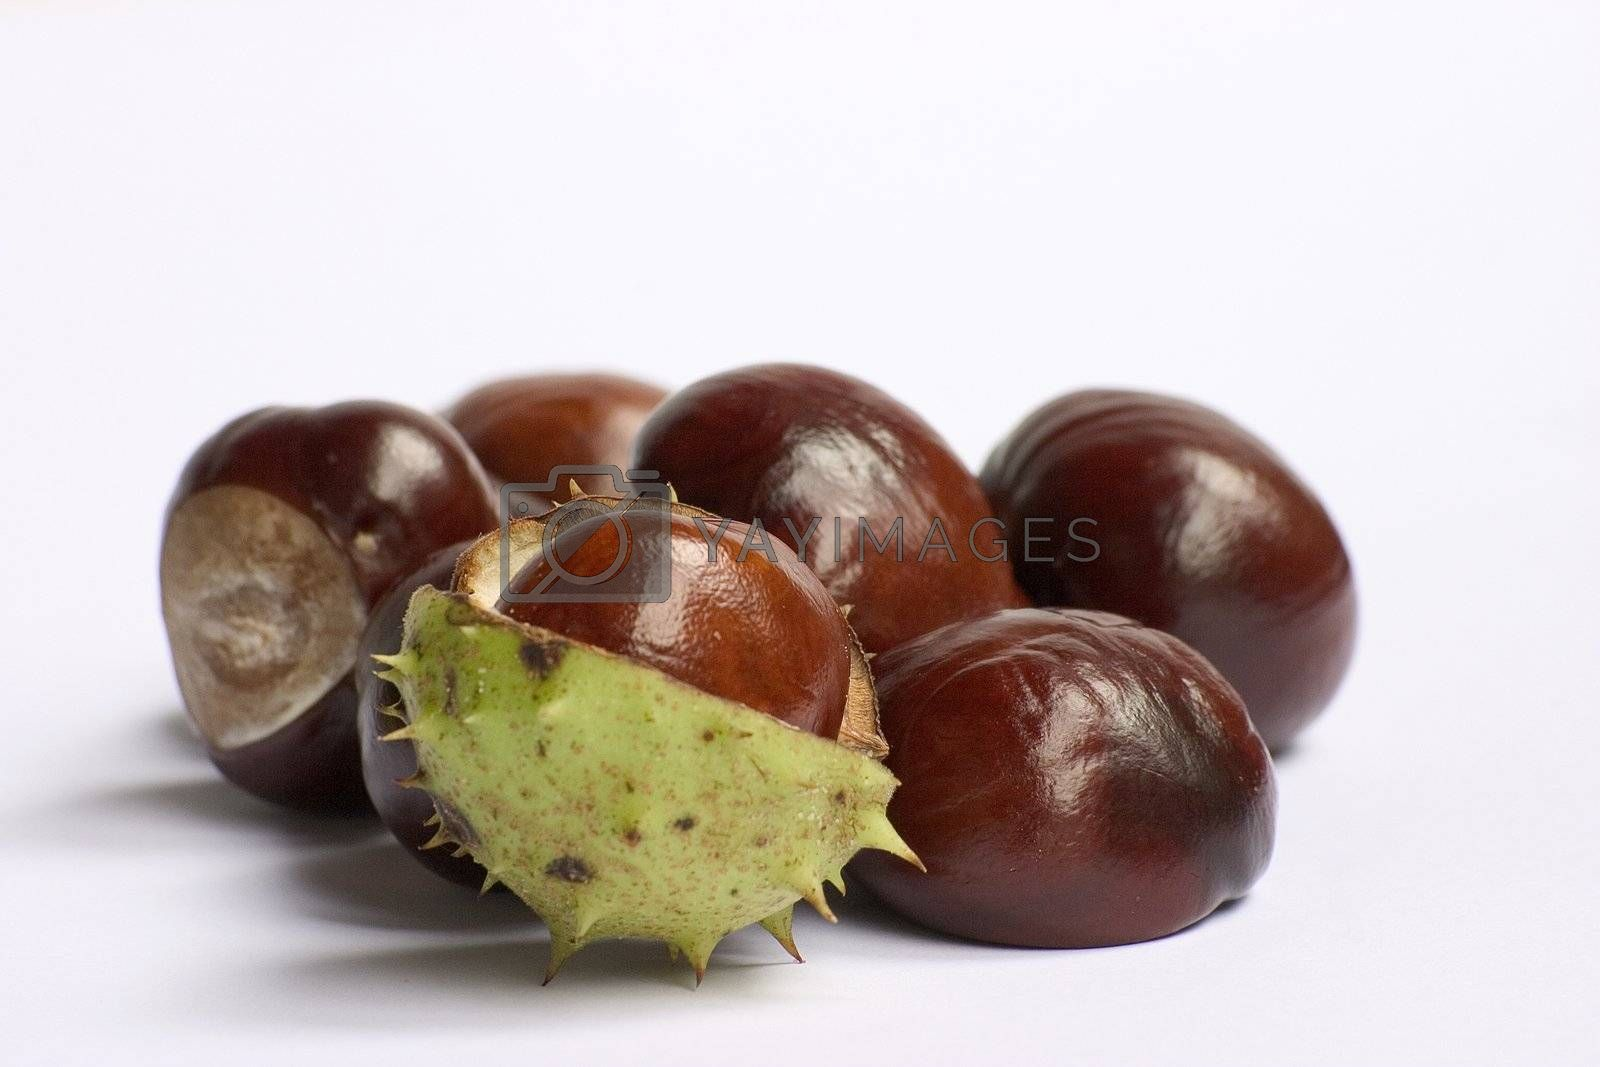 Bunch of chestnuts isolated on a white background.